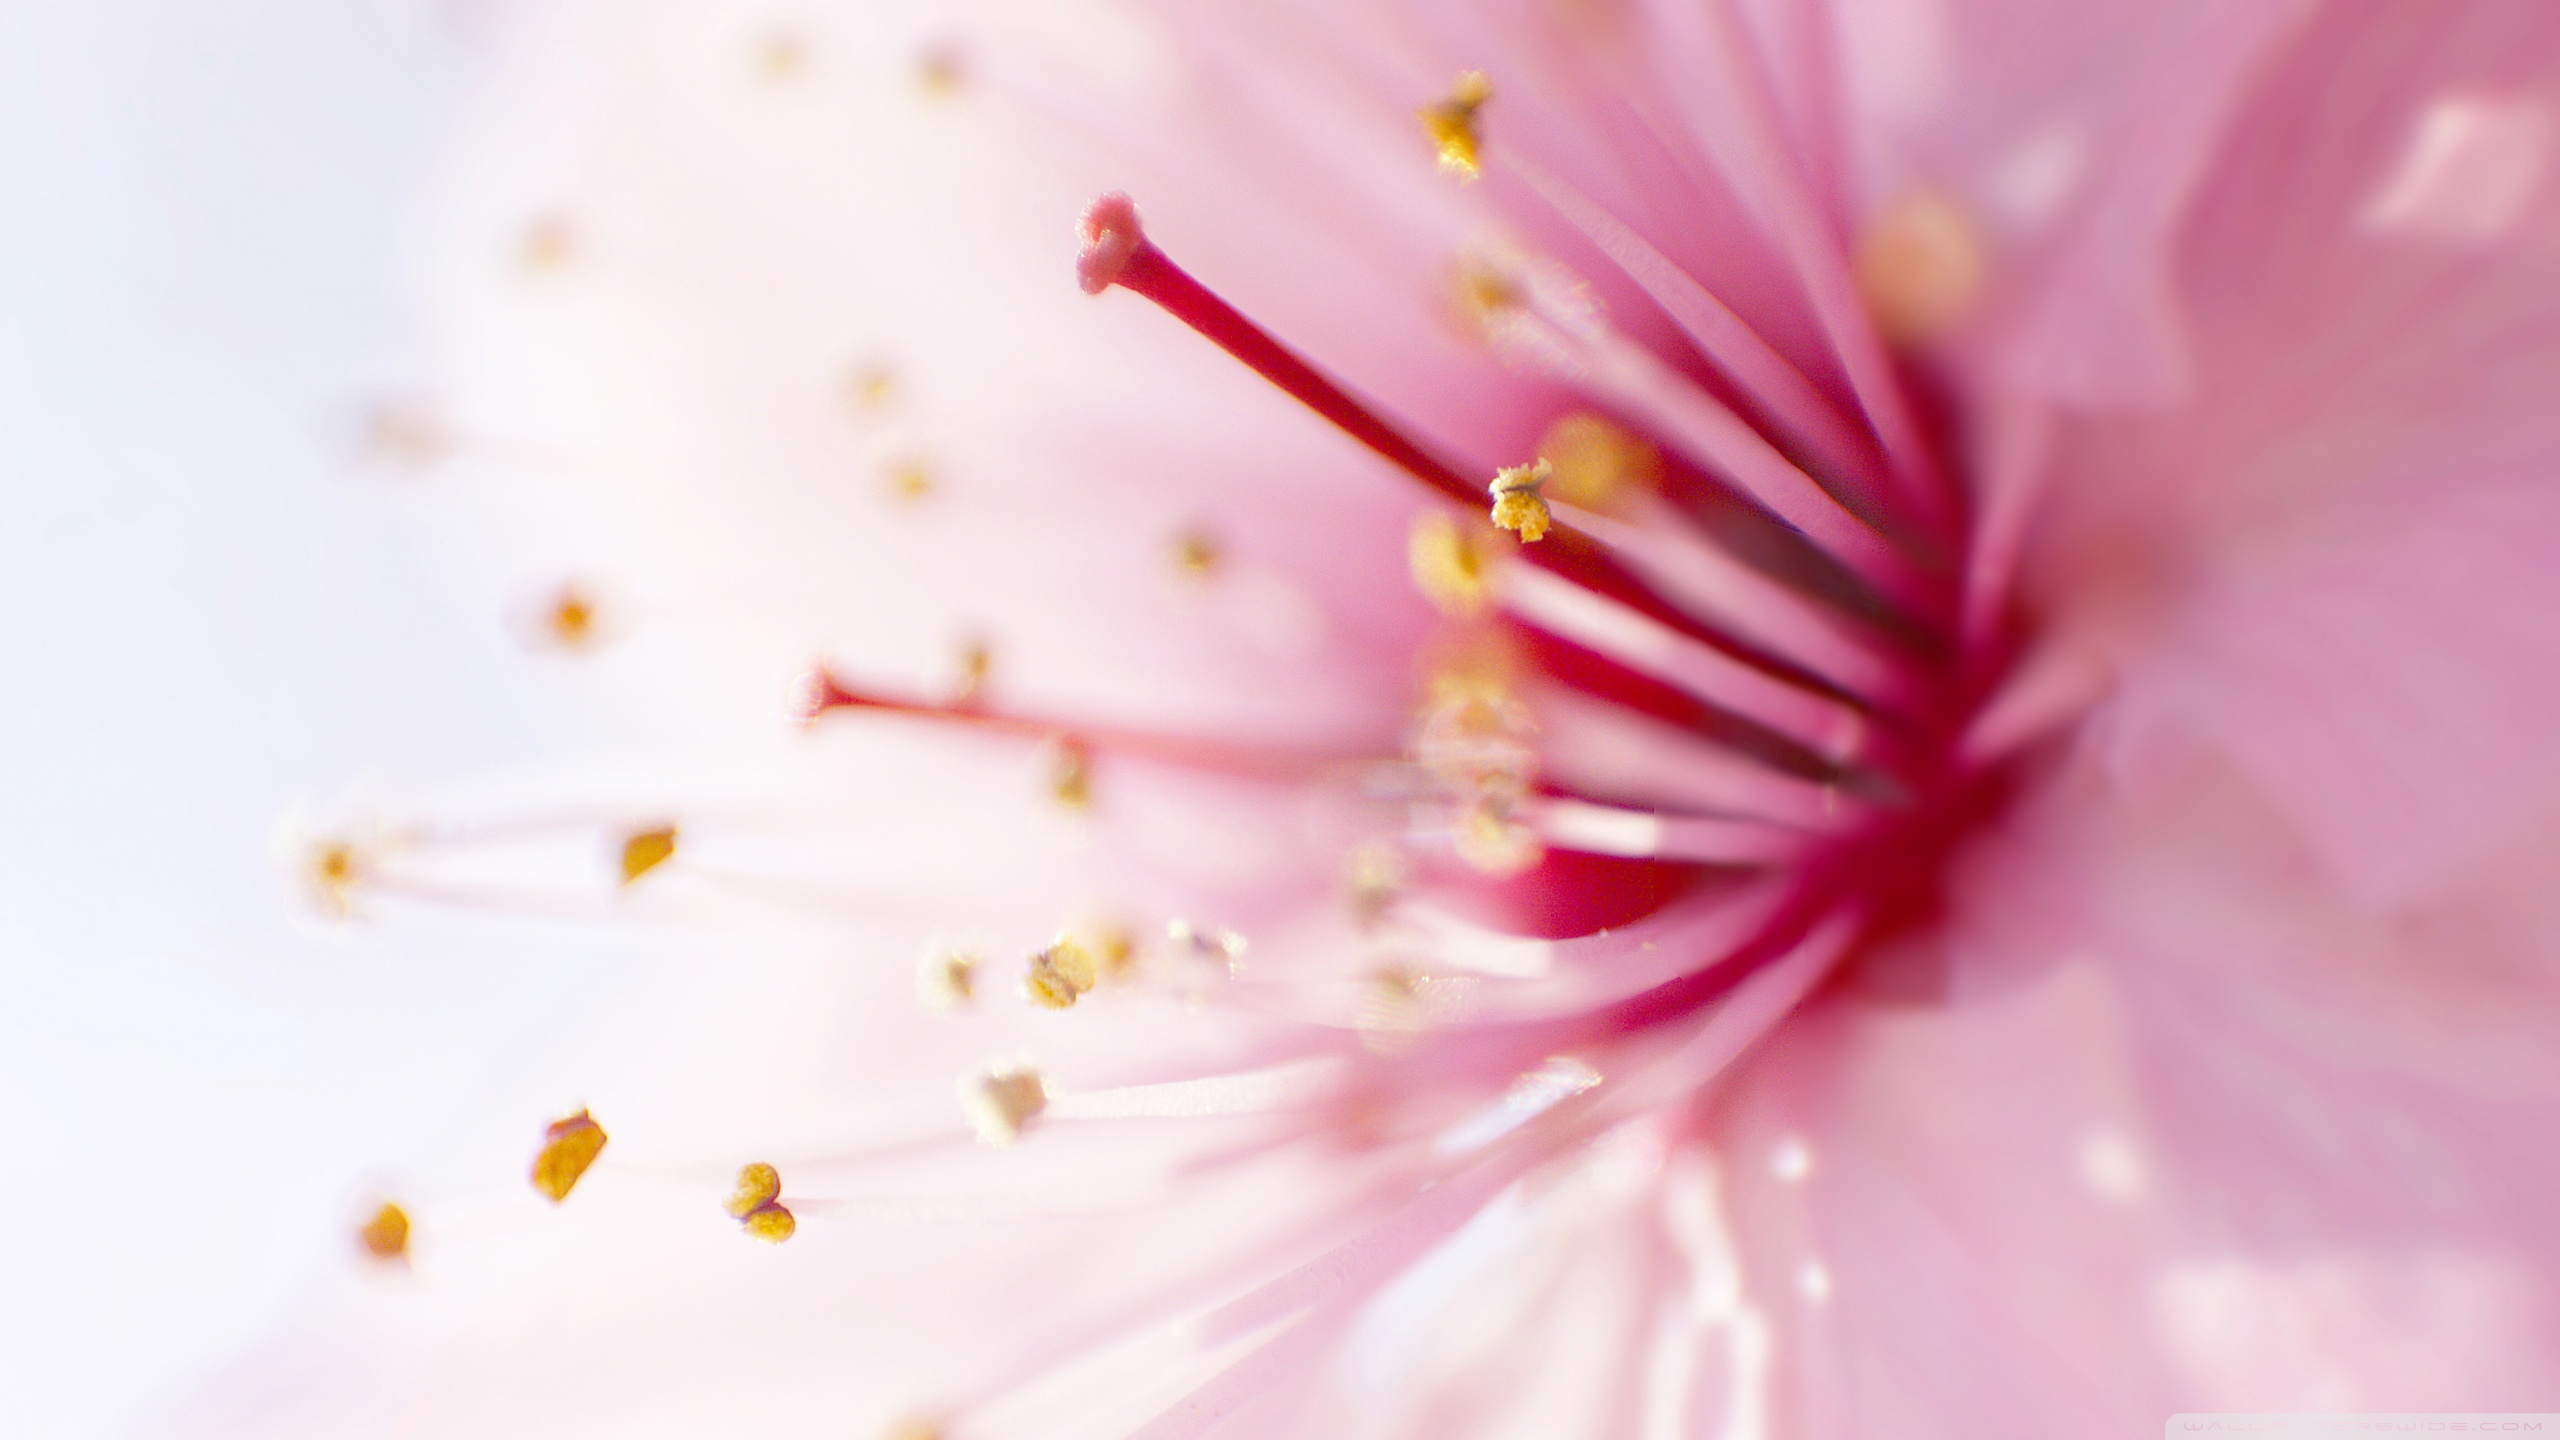 Pink flower wallpapers high quality download free pink flower wallpapers mightylinksfo